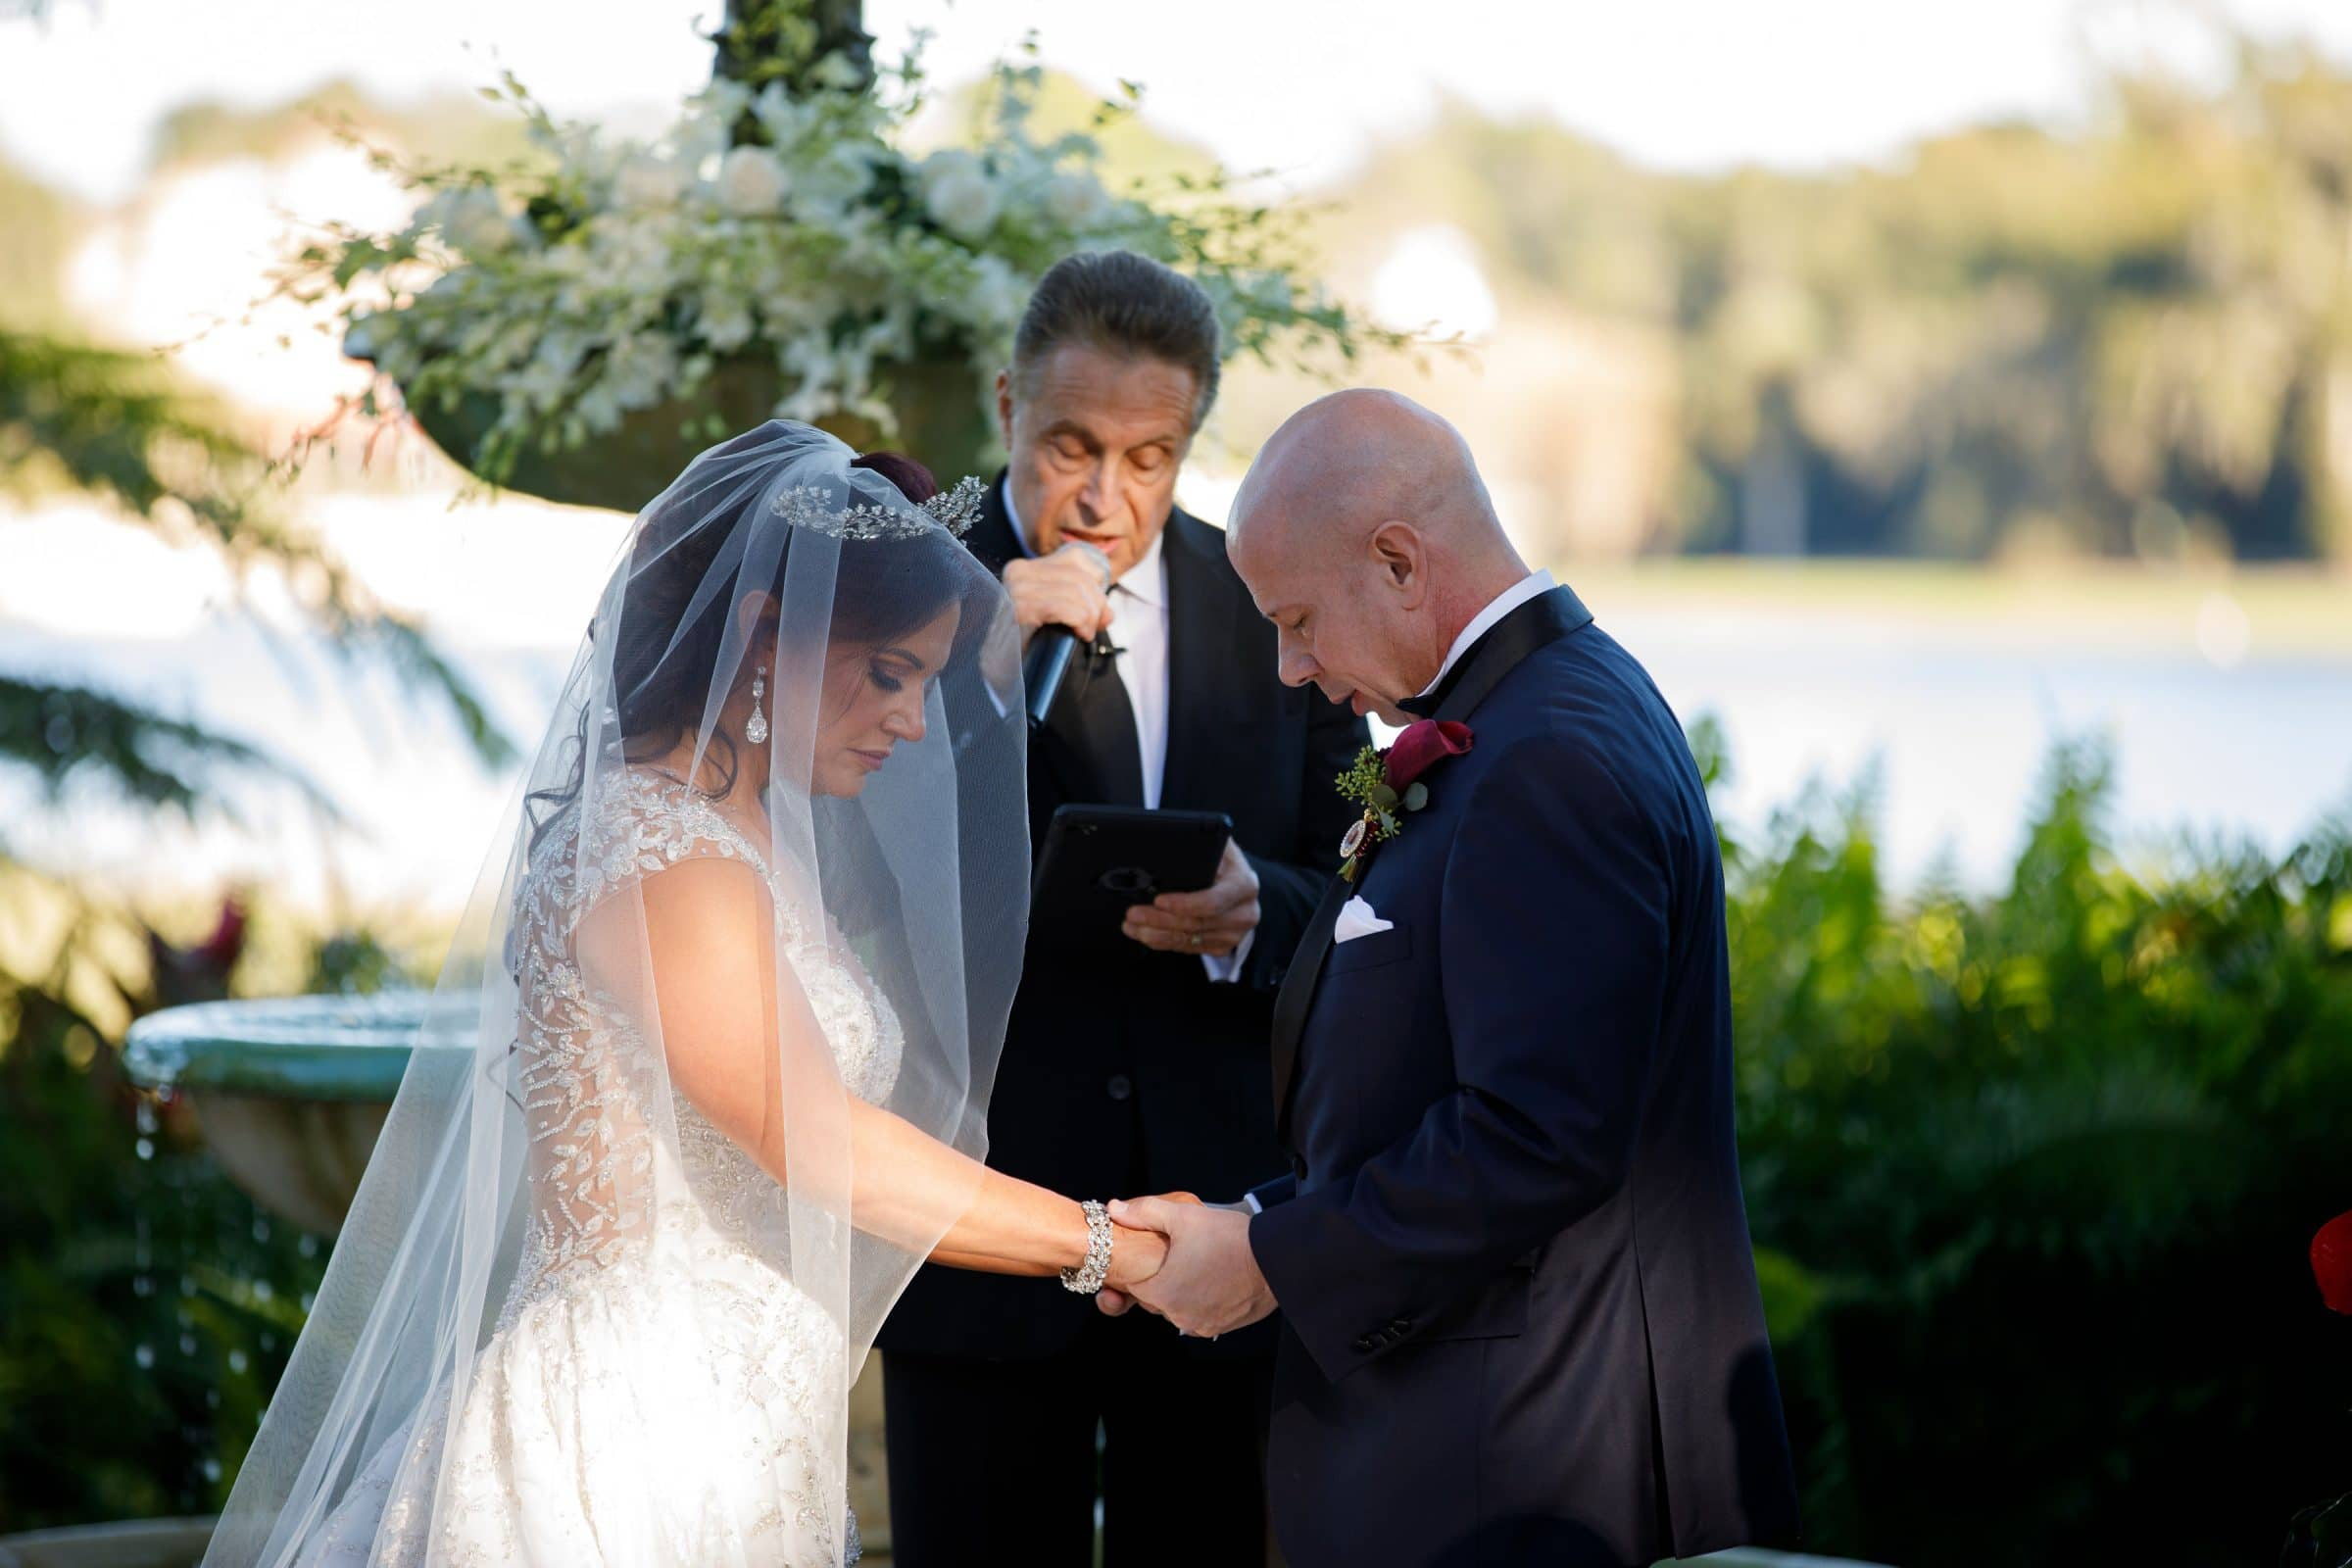 Bride and Groom with Officiant during wedding ceremony